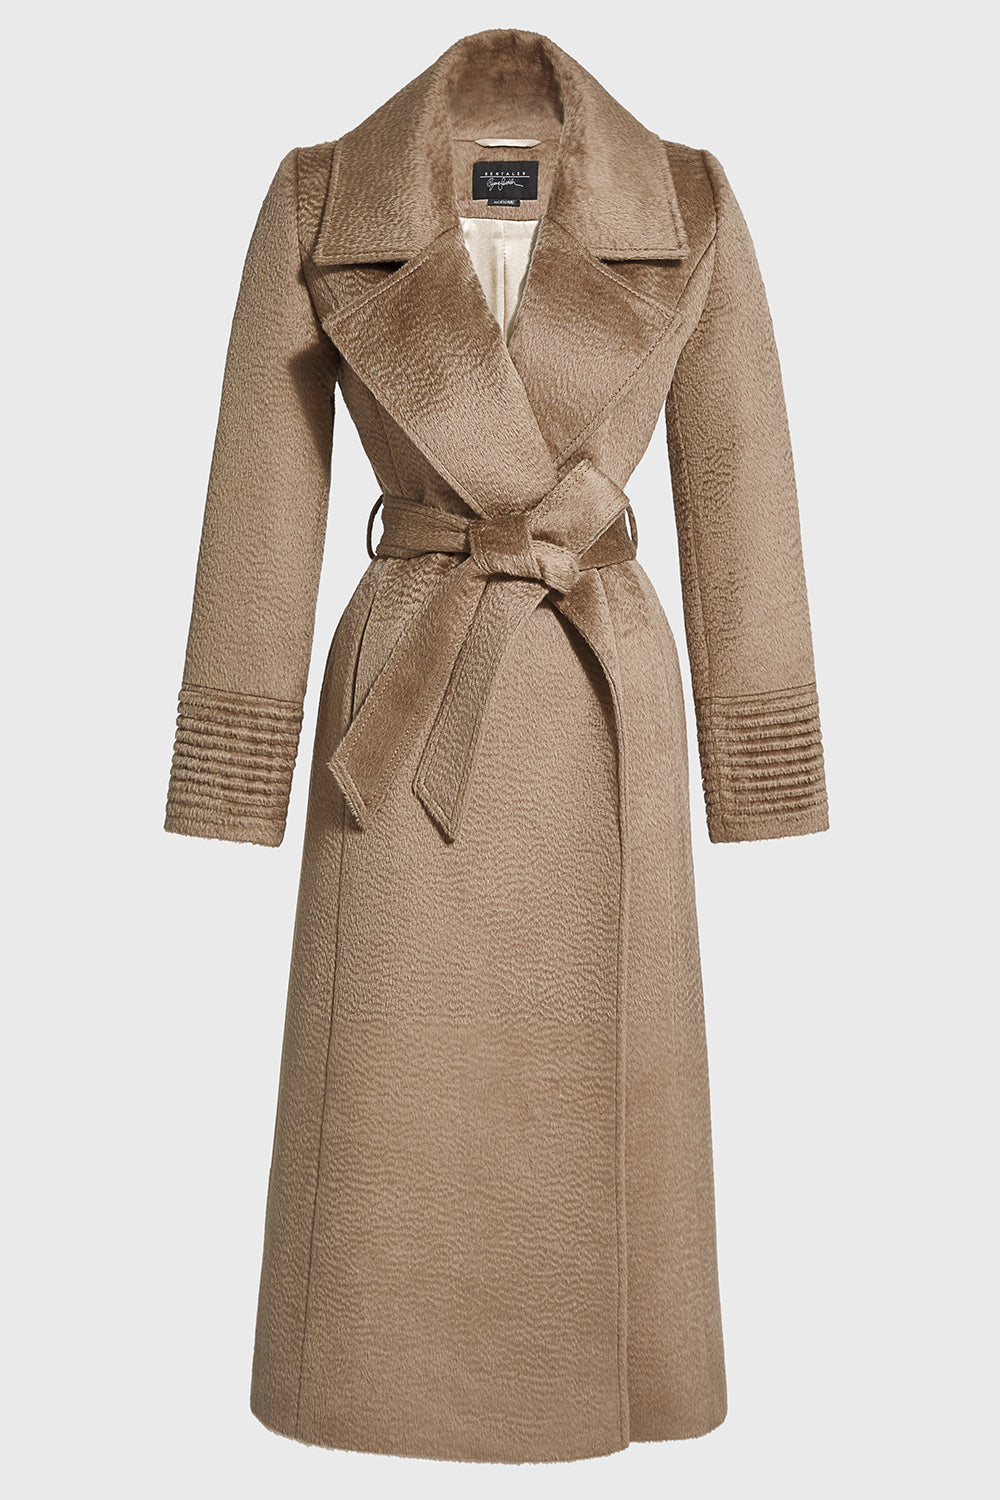 Sentaler Suri Alpaca Long Notched Collar Wrap Coat featured in Suri Alpaca and available in Hazelnut. Seen off model.